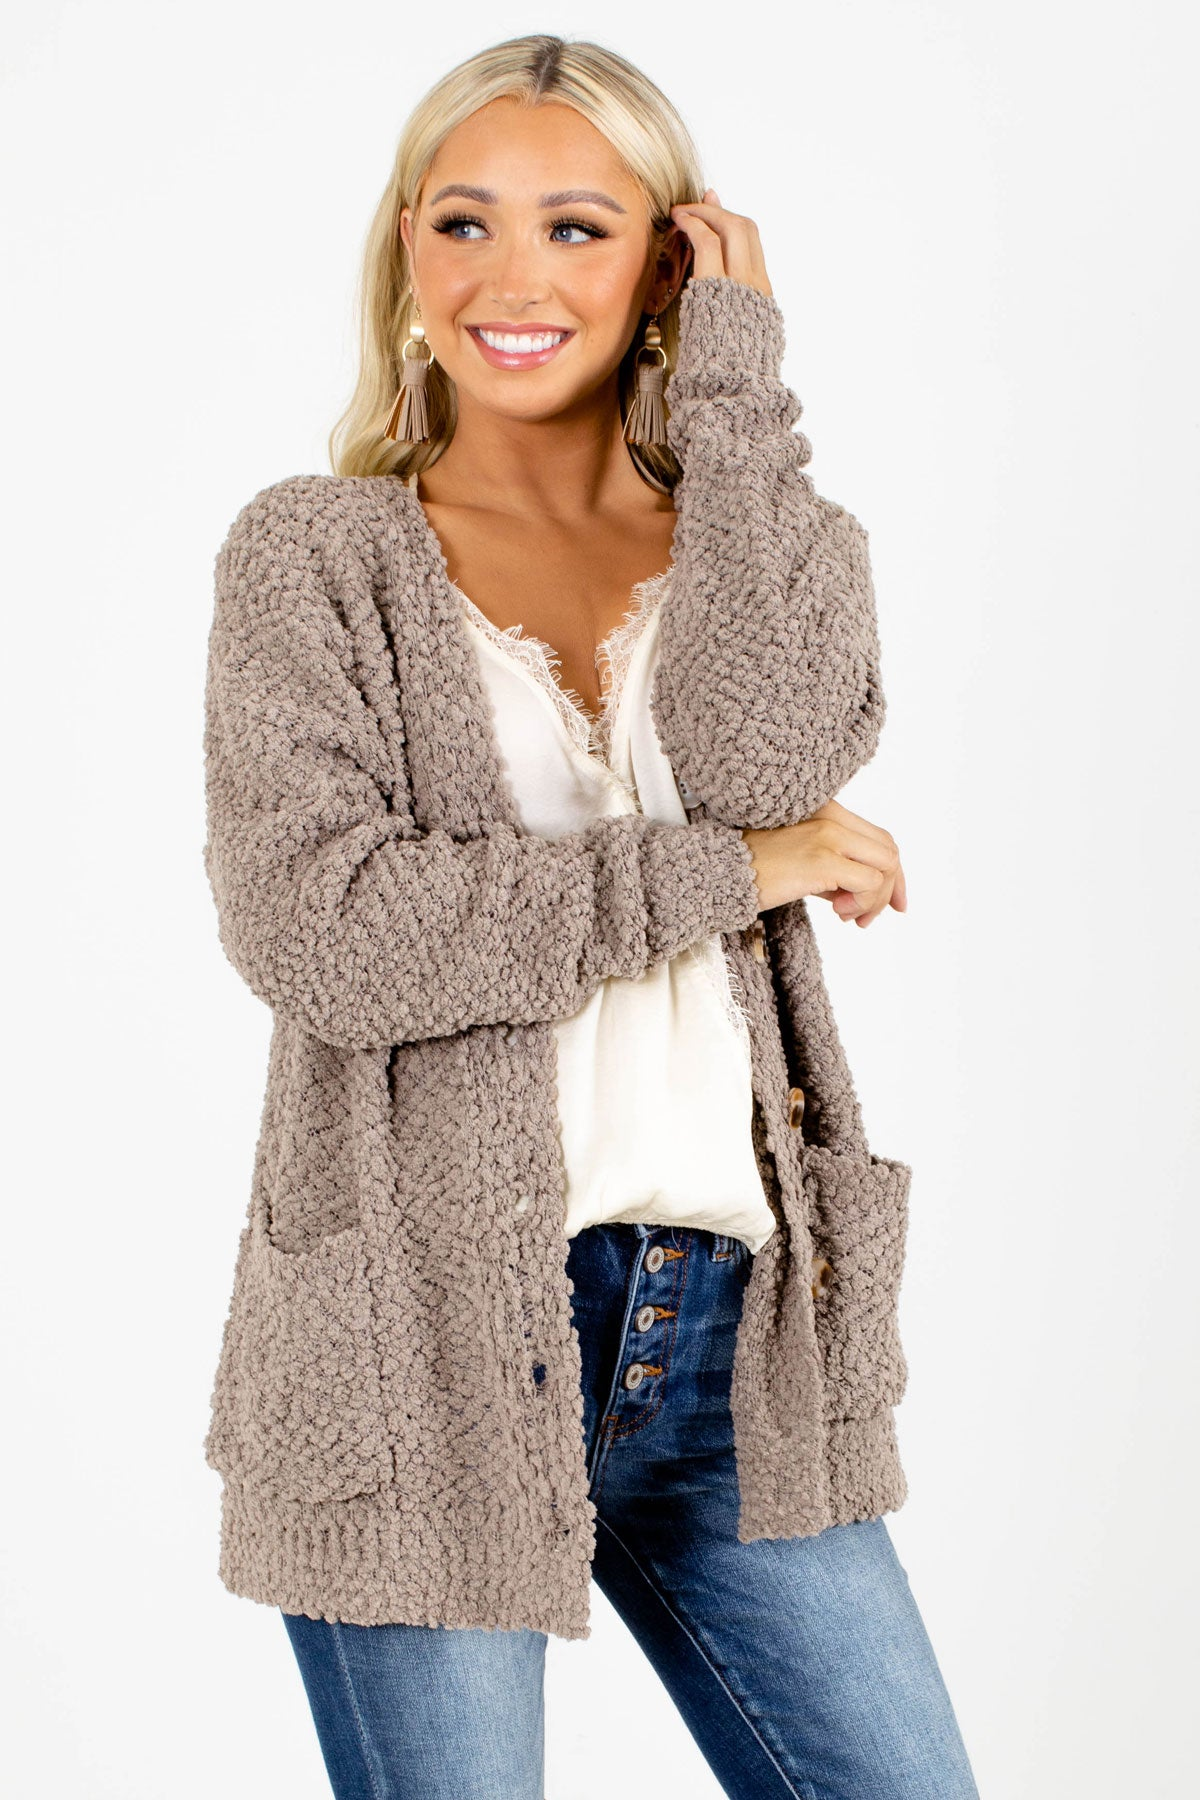 Brown Popcorn Knit Boutique Cardigans for Women